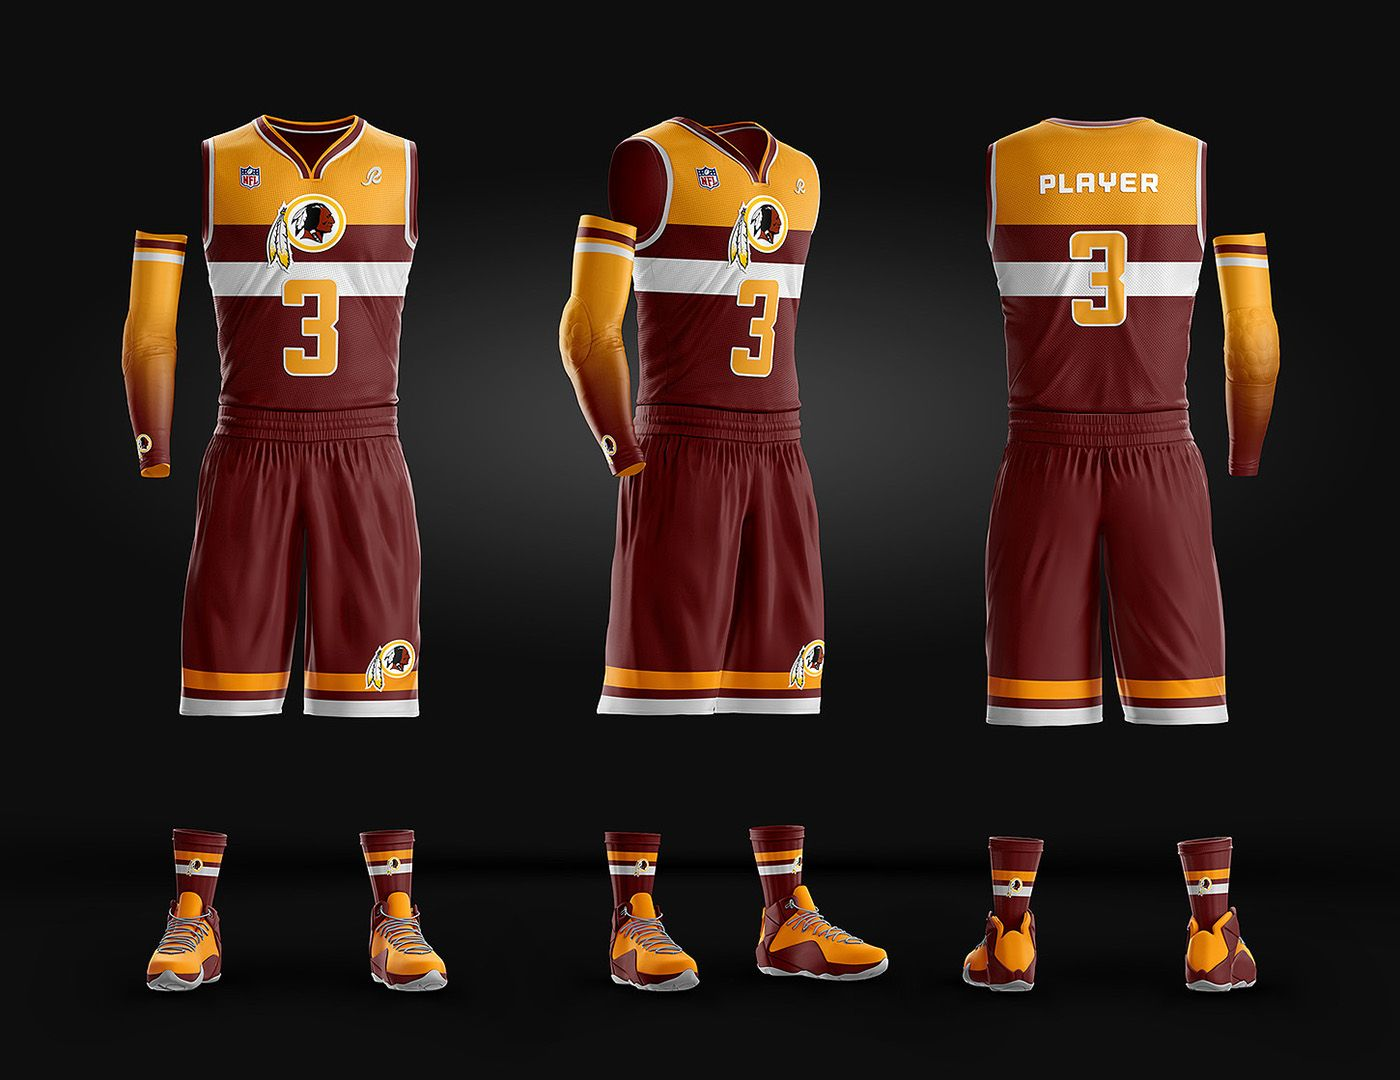 Free Uniform Design Maker